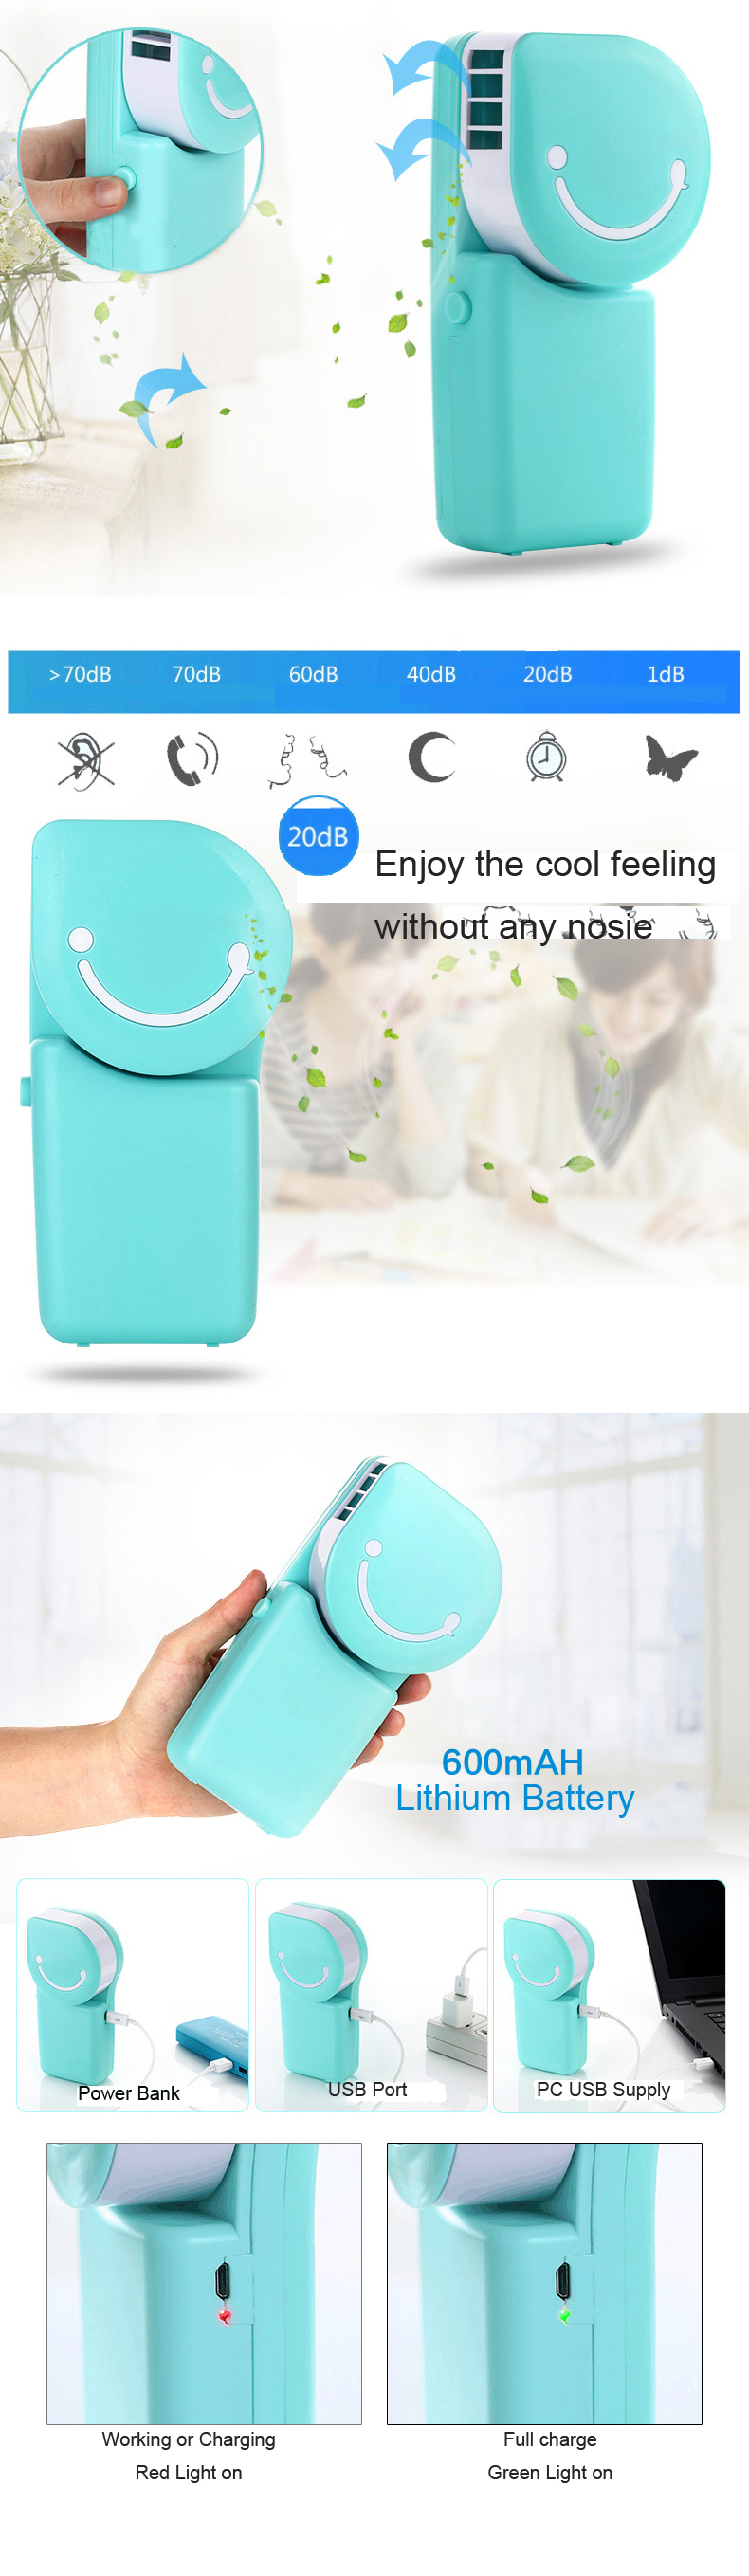 Loskii LX-882 Summer Mini Fan Cooling Portable Air Conditioning USB Charge Hand-held Cool Fan 22